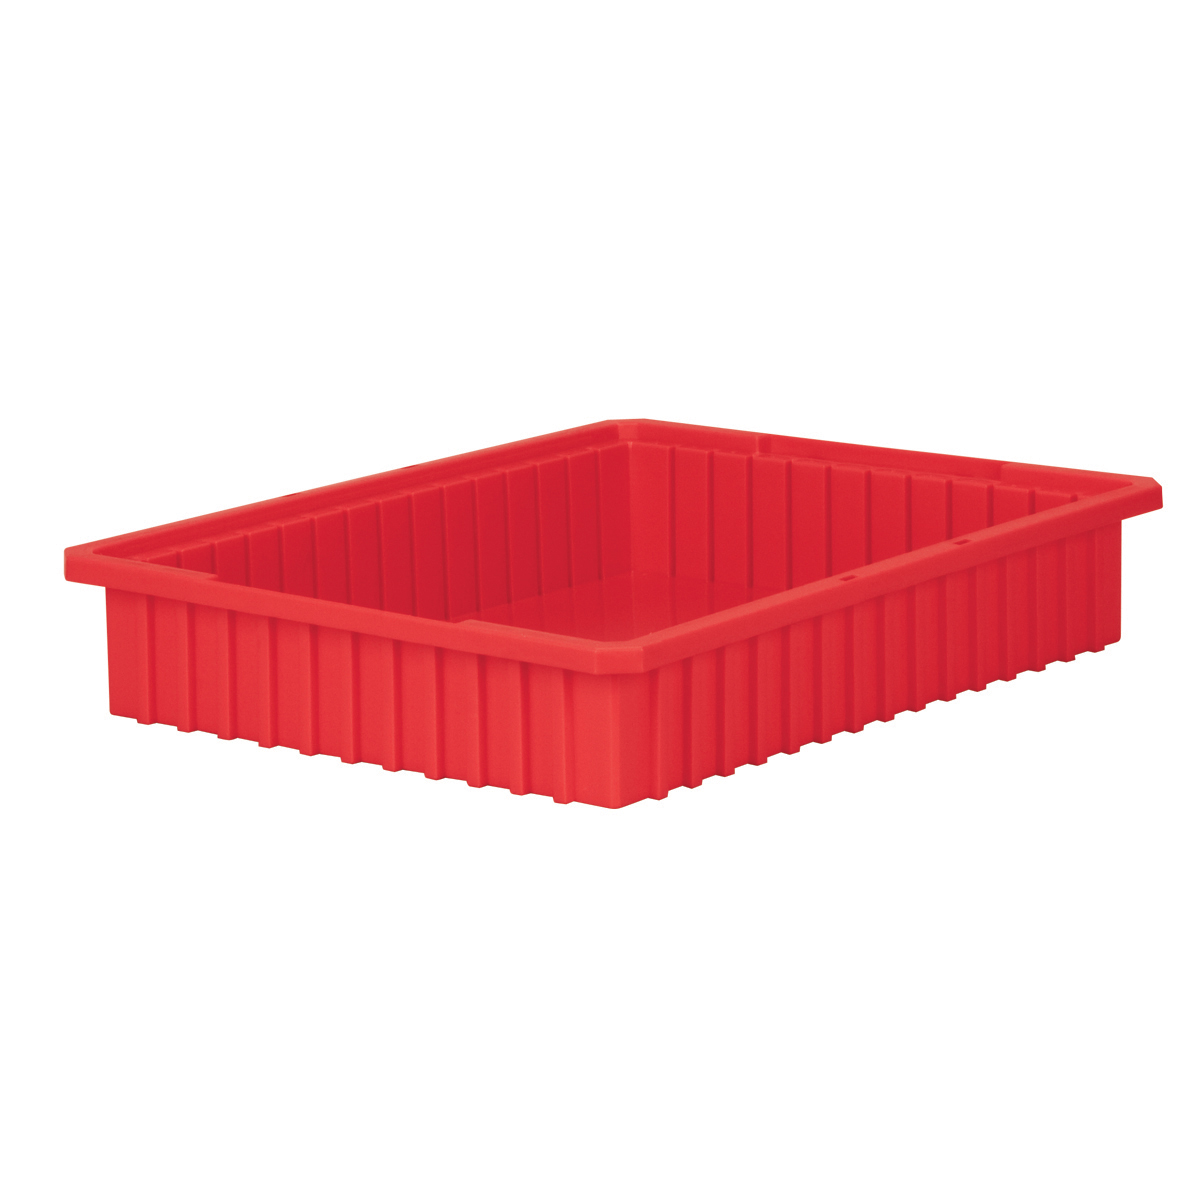 Akro-Grid Dividable Box 22-3/8 x 17-3/8 x 4, Red (33224RED).  This item sold in carton quantities of 6.